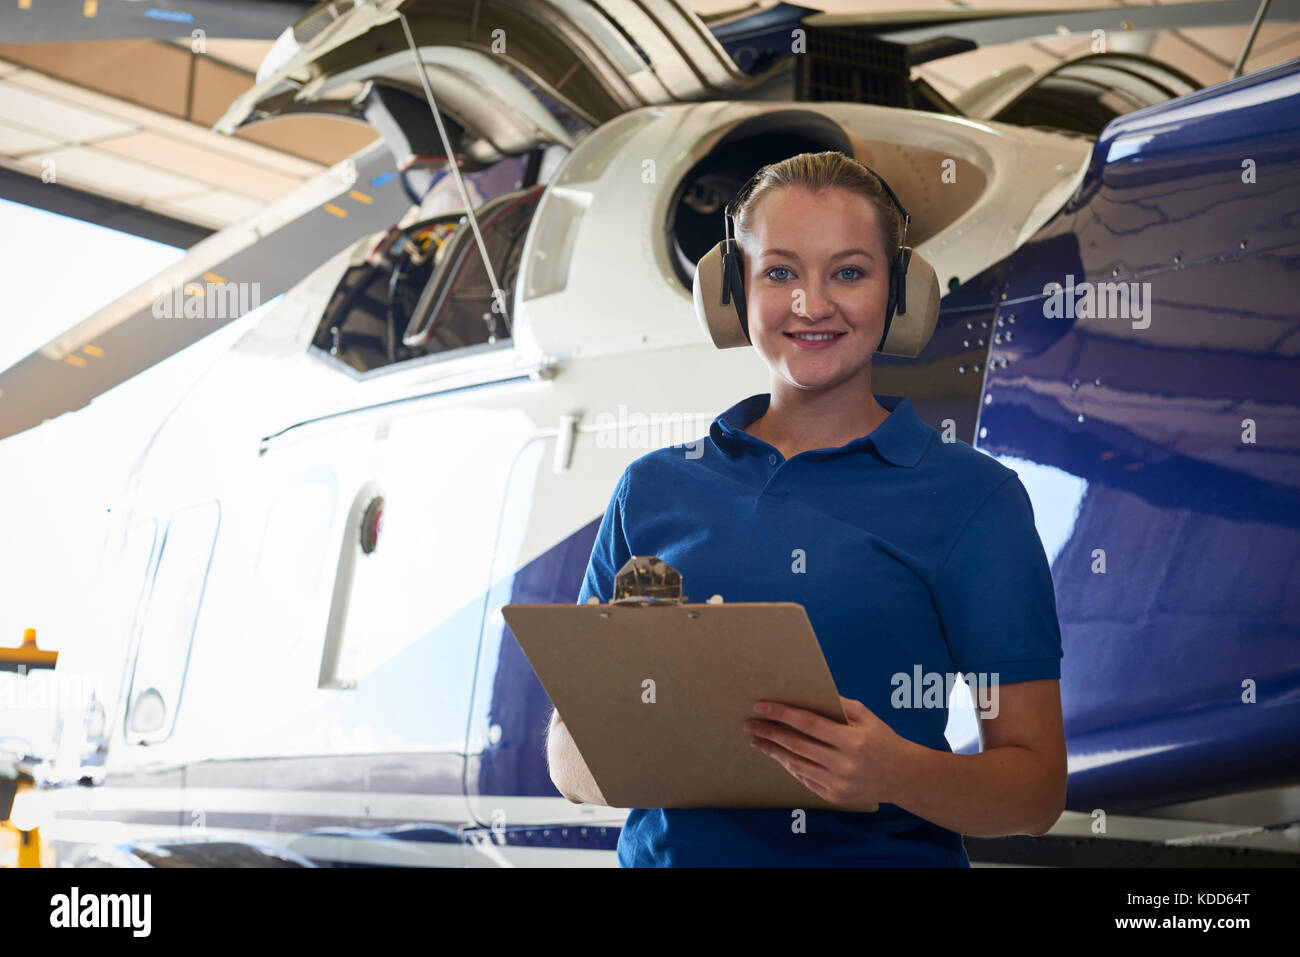 Portrait Of Female Aero Engineer With Clipboard Carrying Out Check On Helicopter In Hangar - Stock Image